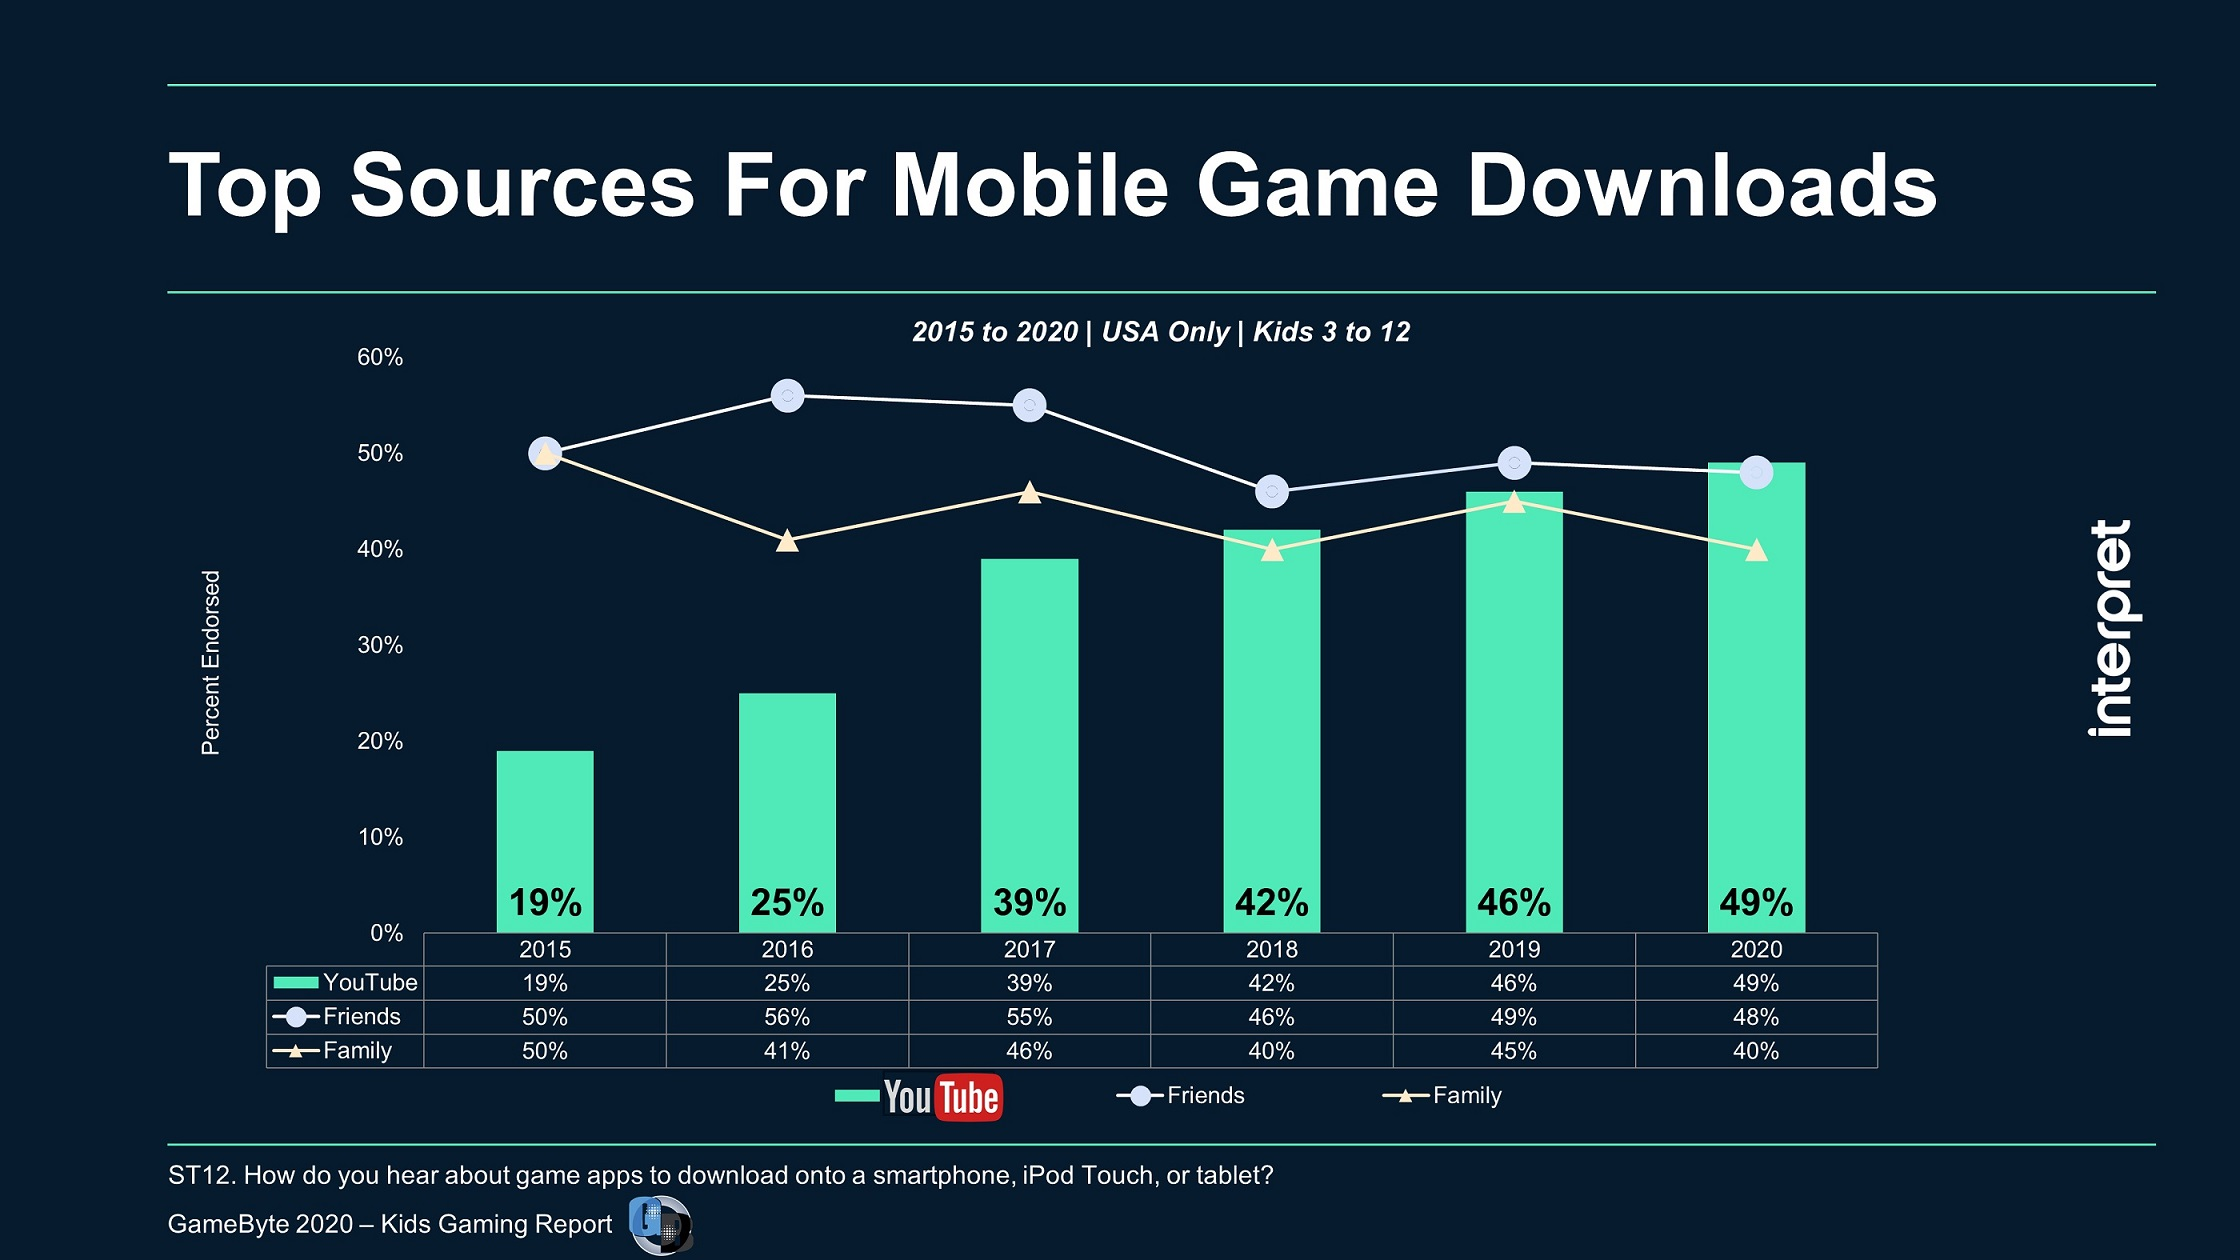 Youtube Now The Top Mobile Game Discovery Path For Kids